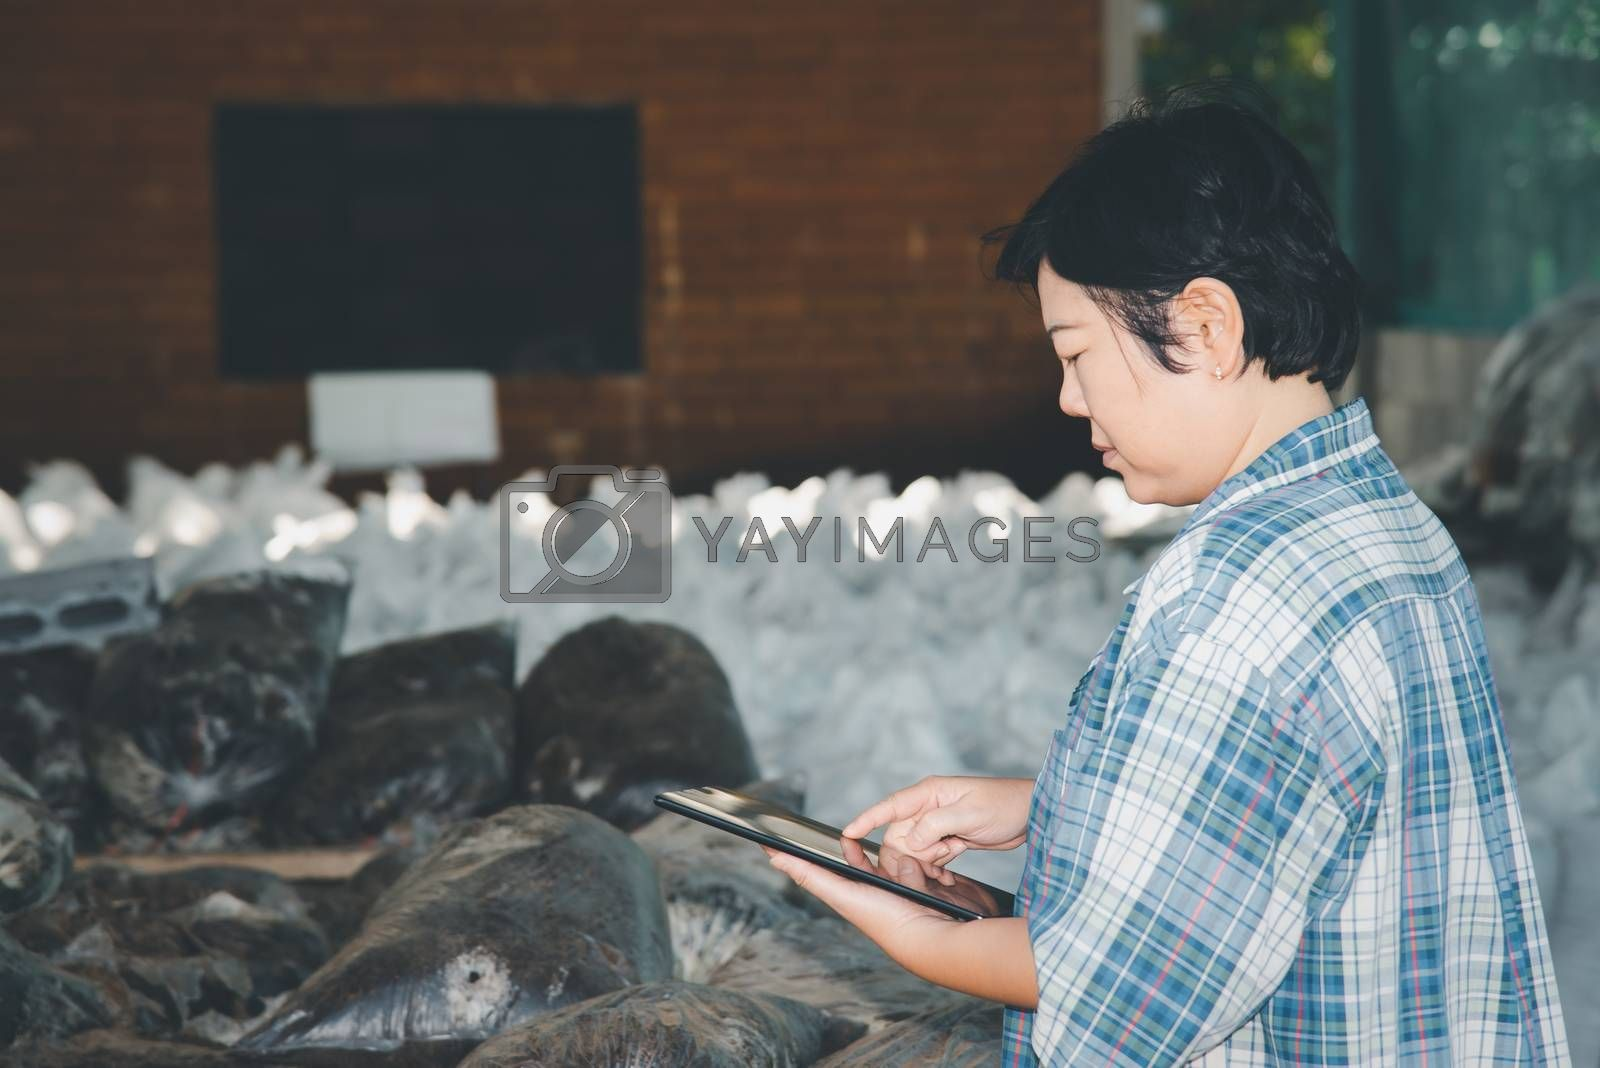 Asian woman smart farmer agriculturist working at Fertilizer composting plant with Organic Fertilizer, Compost (Aerobic Microorganisms) from animal waste for use in the organic agriculture industry